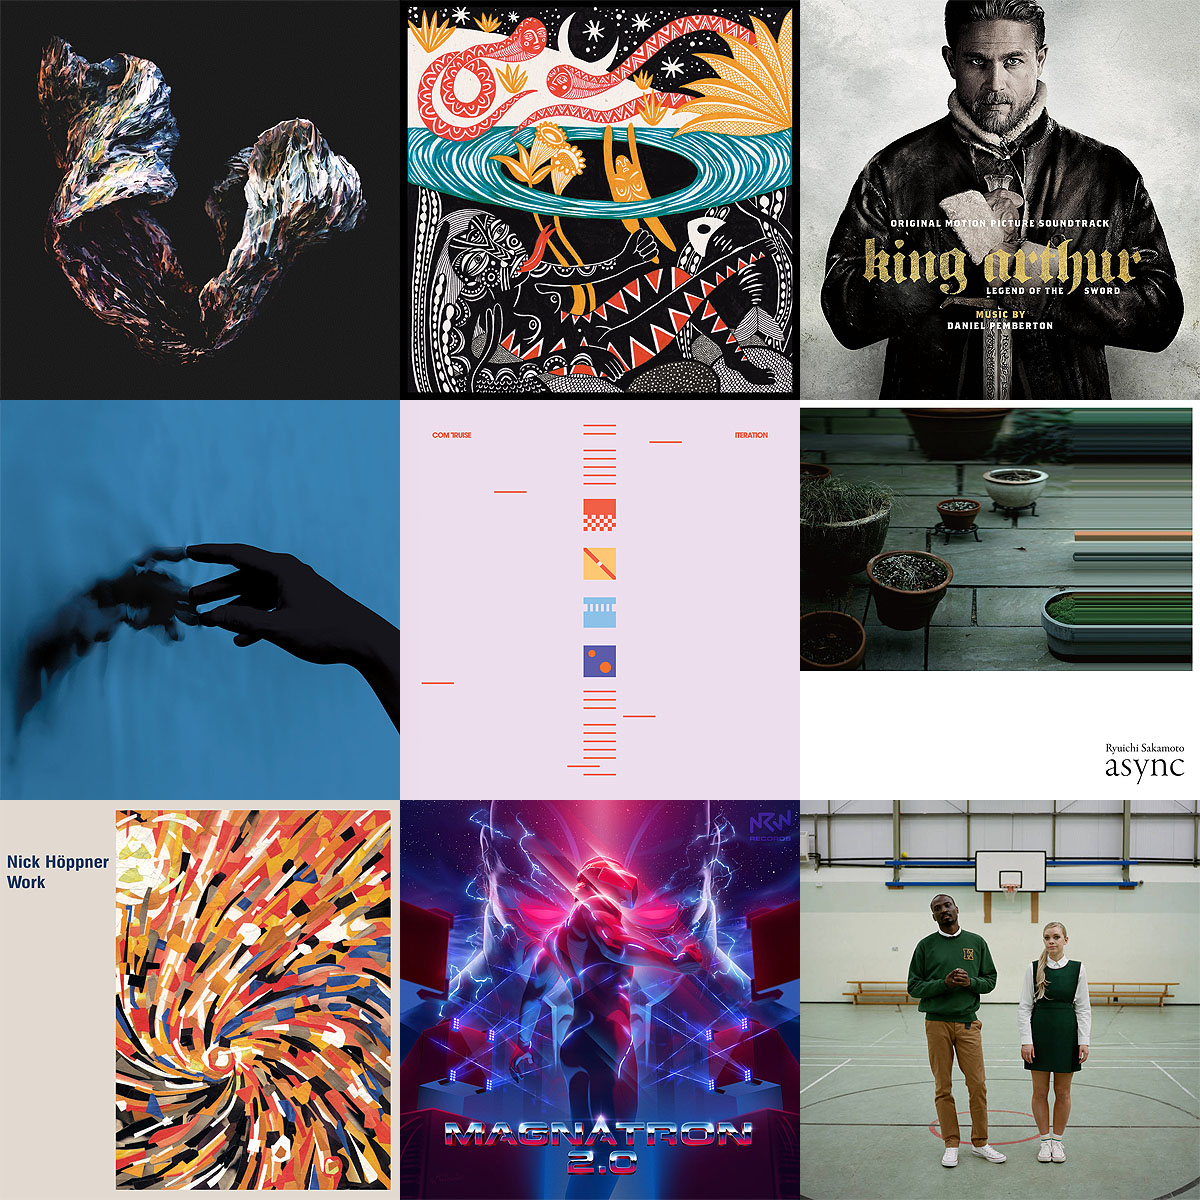 Favorite albums of 2017 - covers